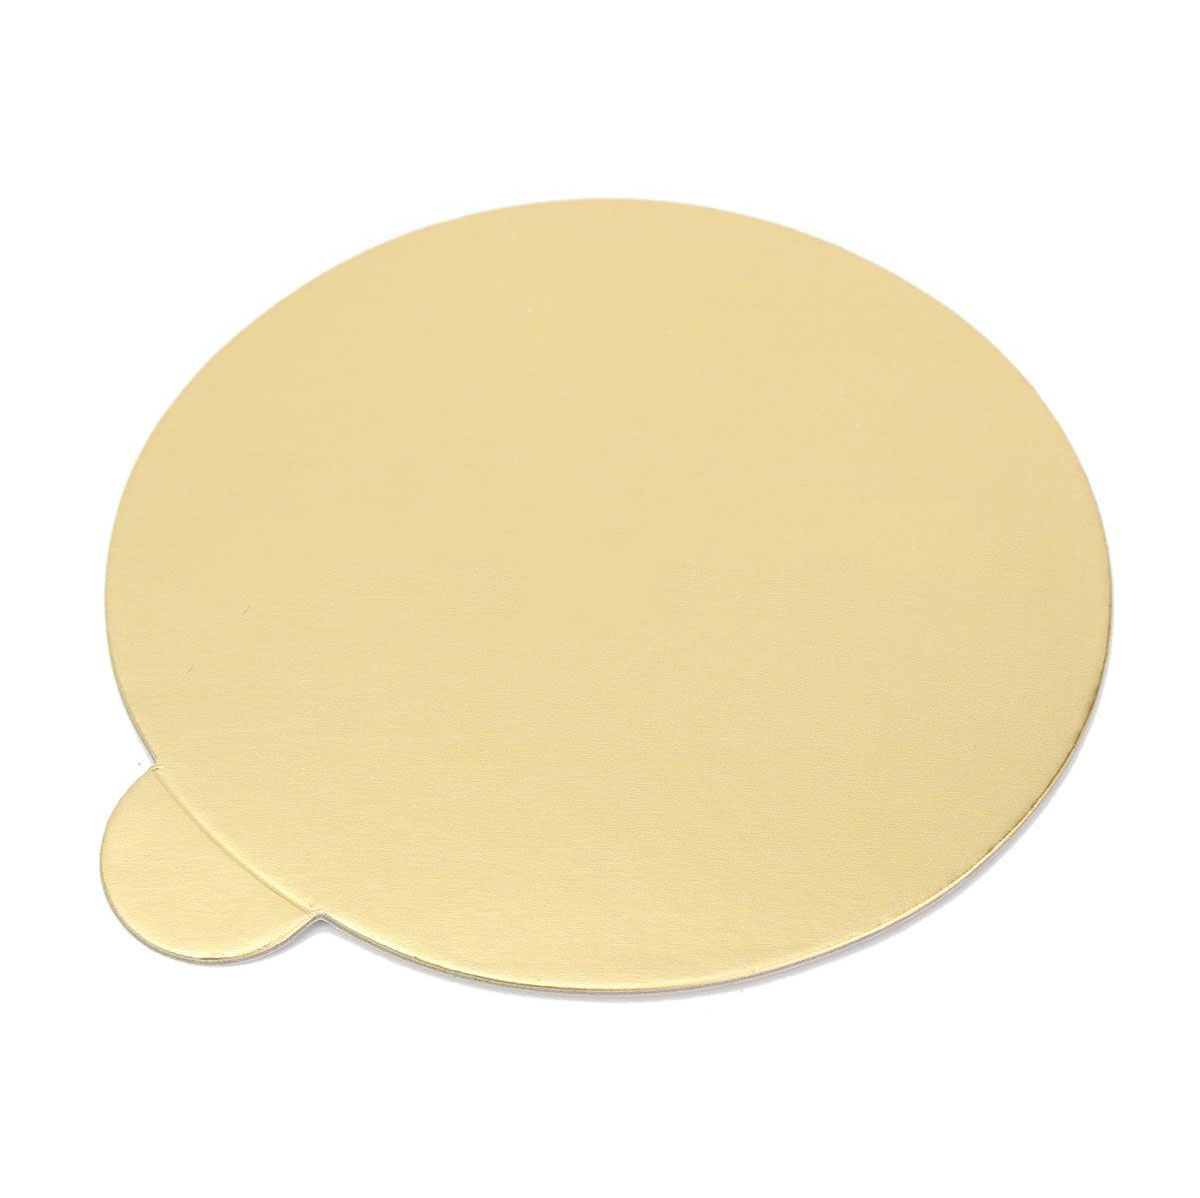 New 100Pcs/set Round Mousse Cake Boards Mayitr Cupcake Dessert Tray Gold Paper Displays Wedding Birthday Pastry Decor